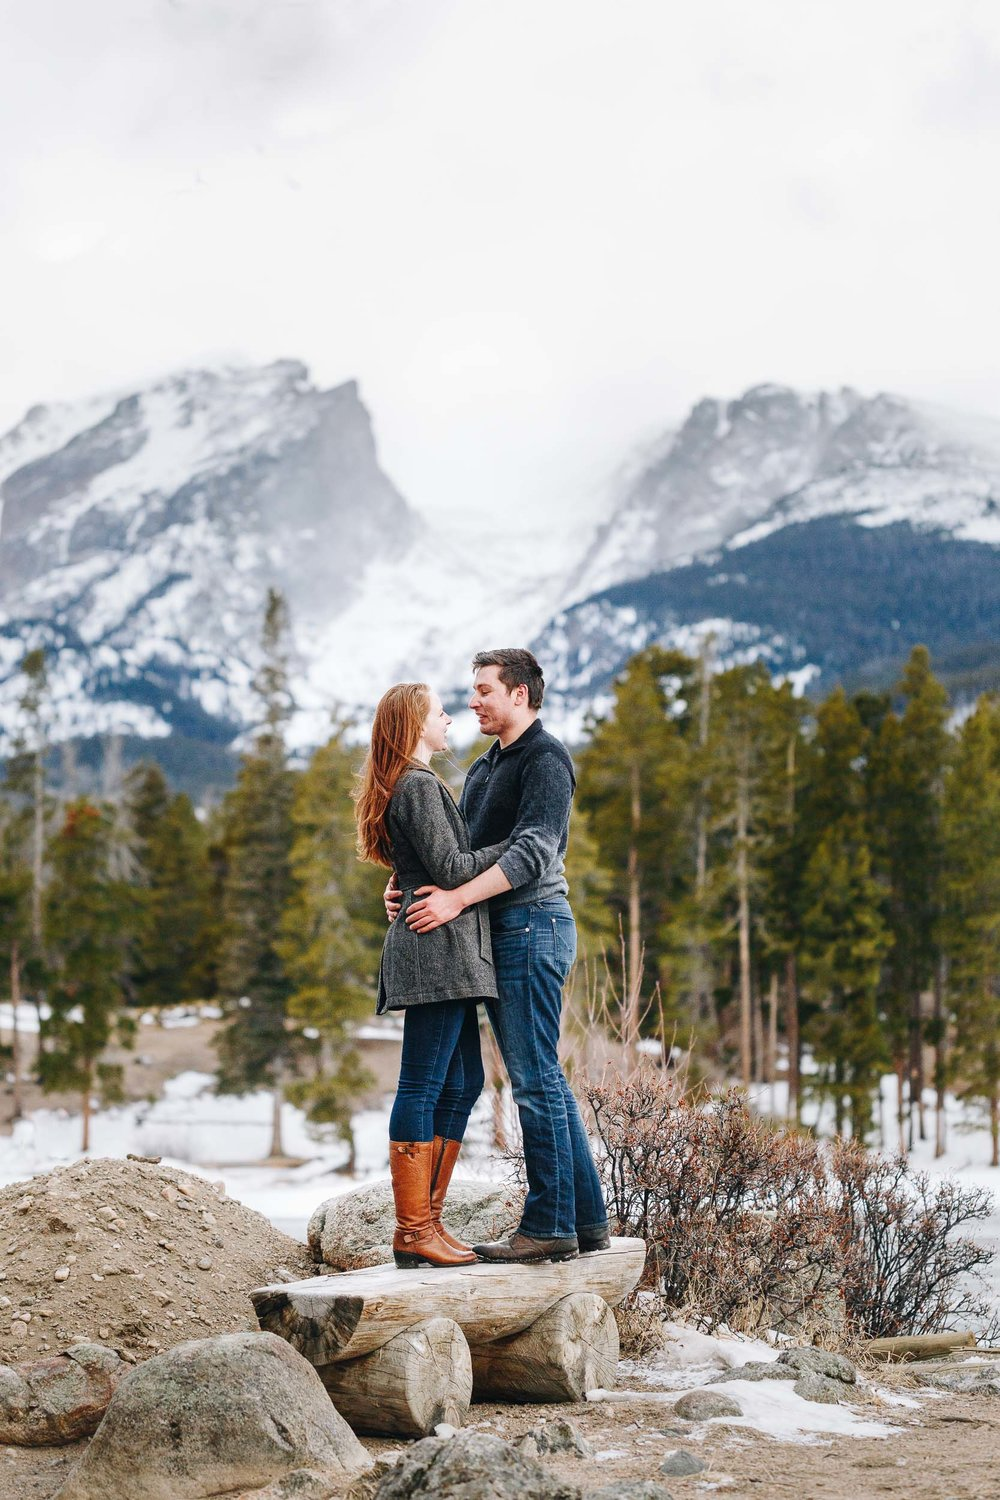 Winter-engagement-photo-session-in-Rocky-Mountain-National-Park-127.jpg